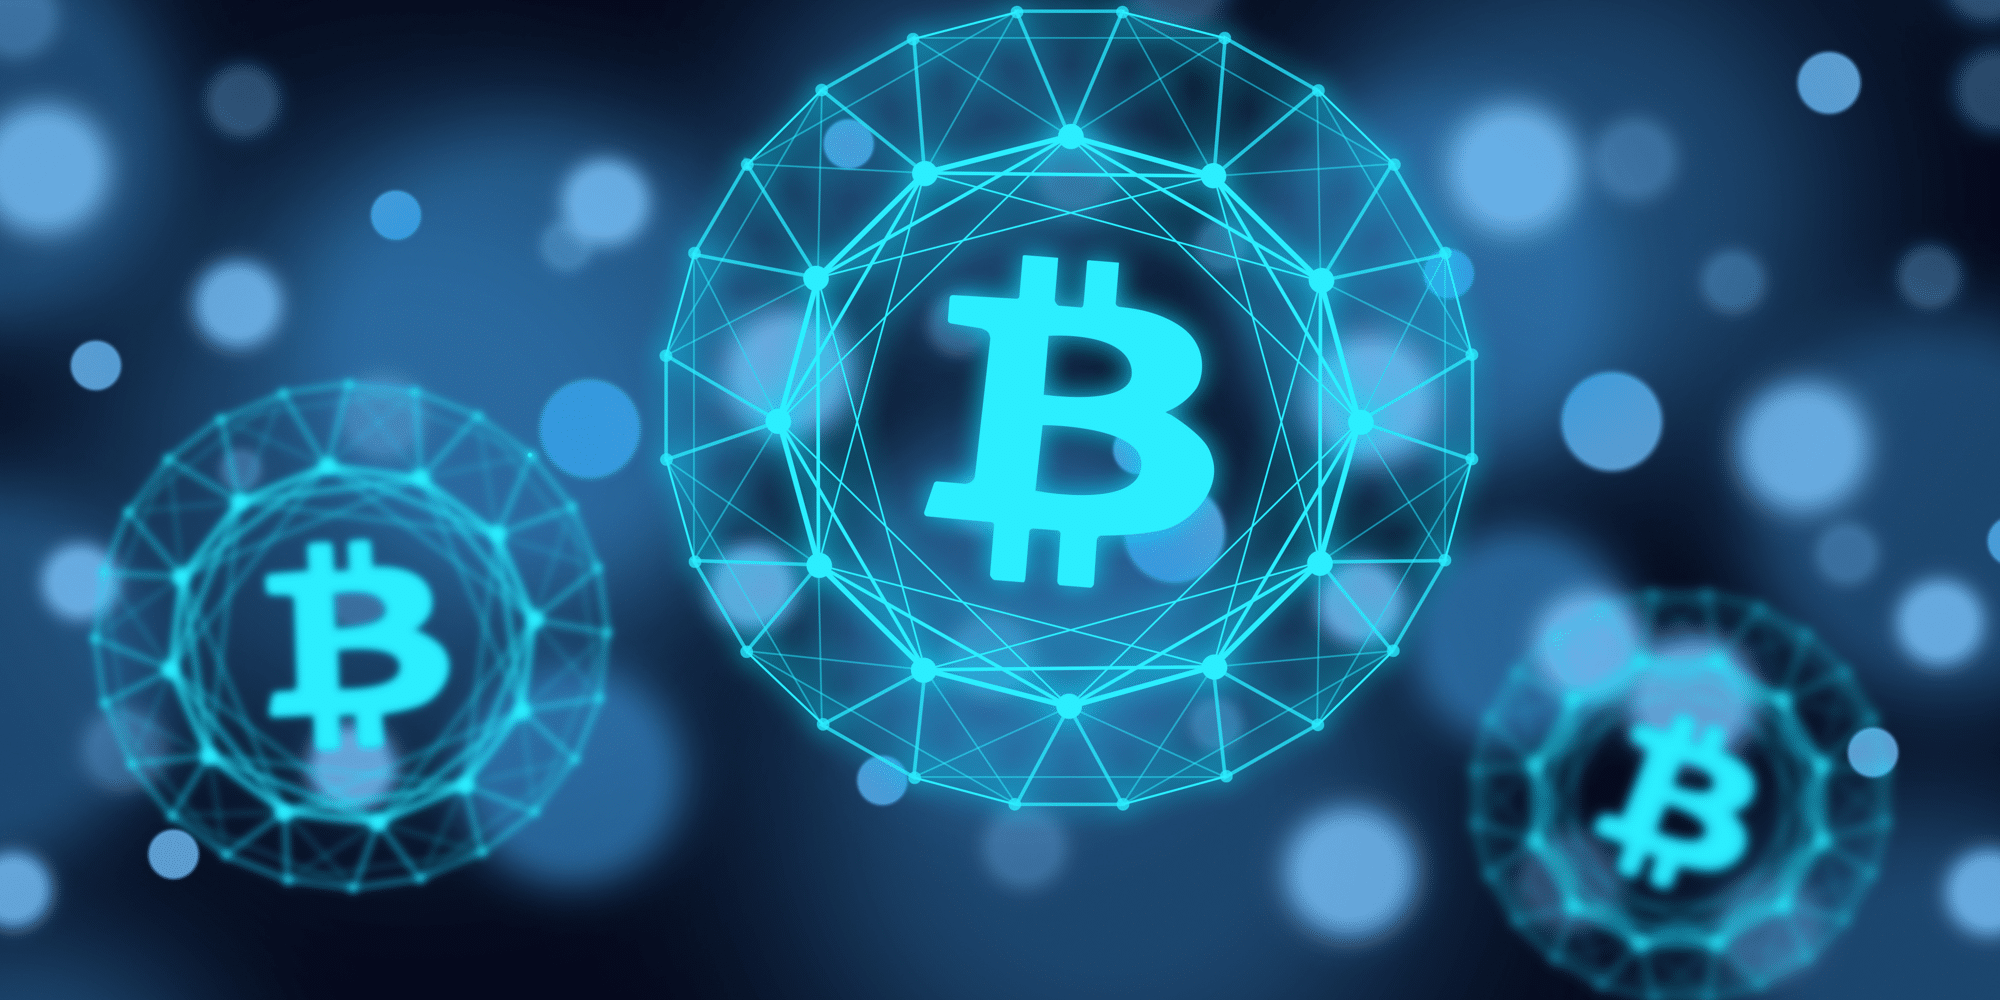 65 Bitcoin HD Wallpapers Background Images 2000x1000